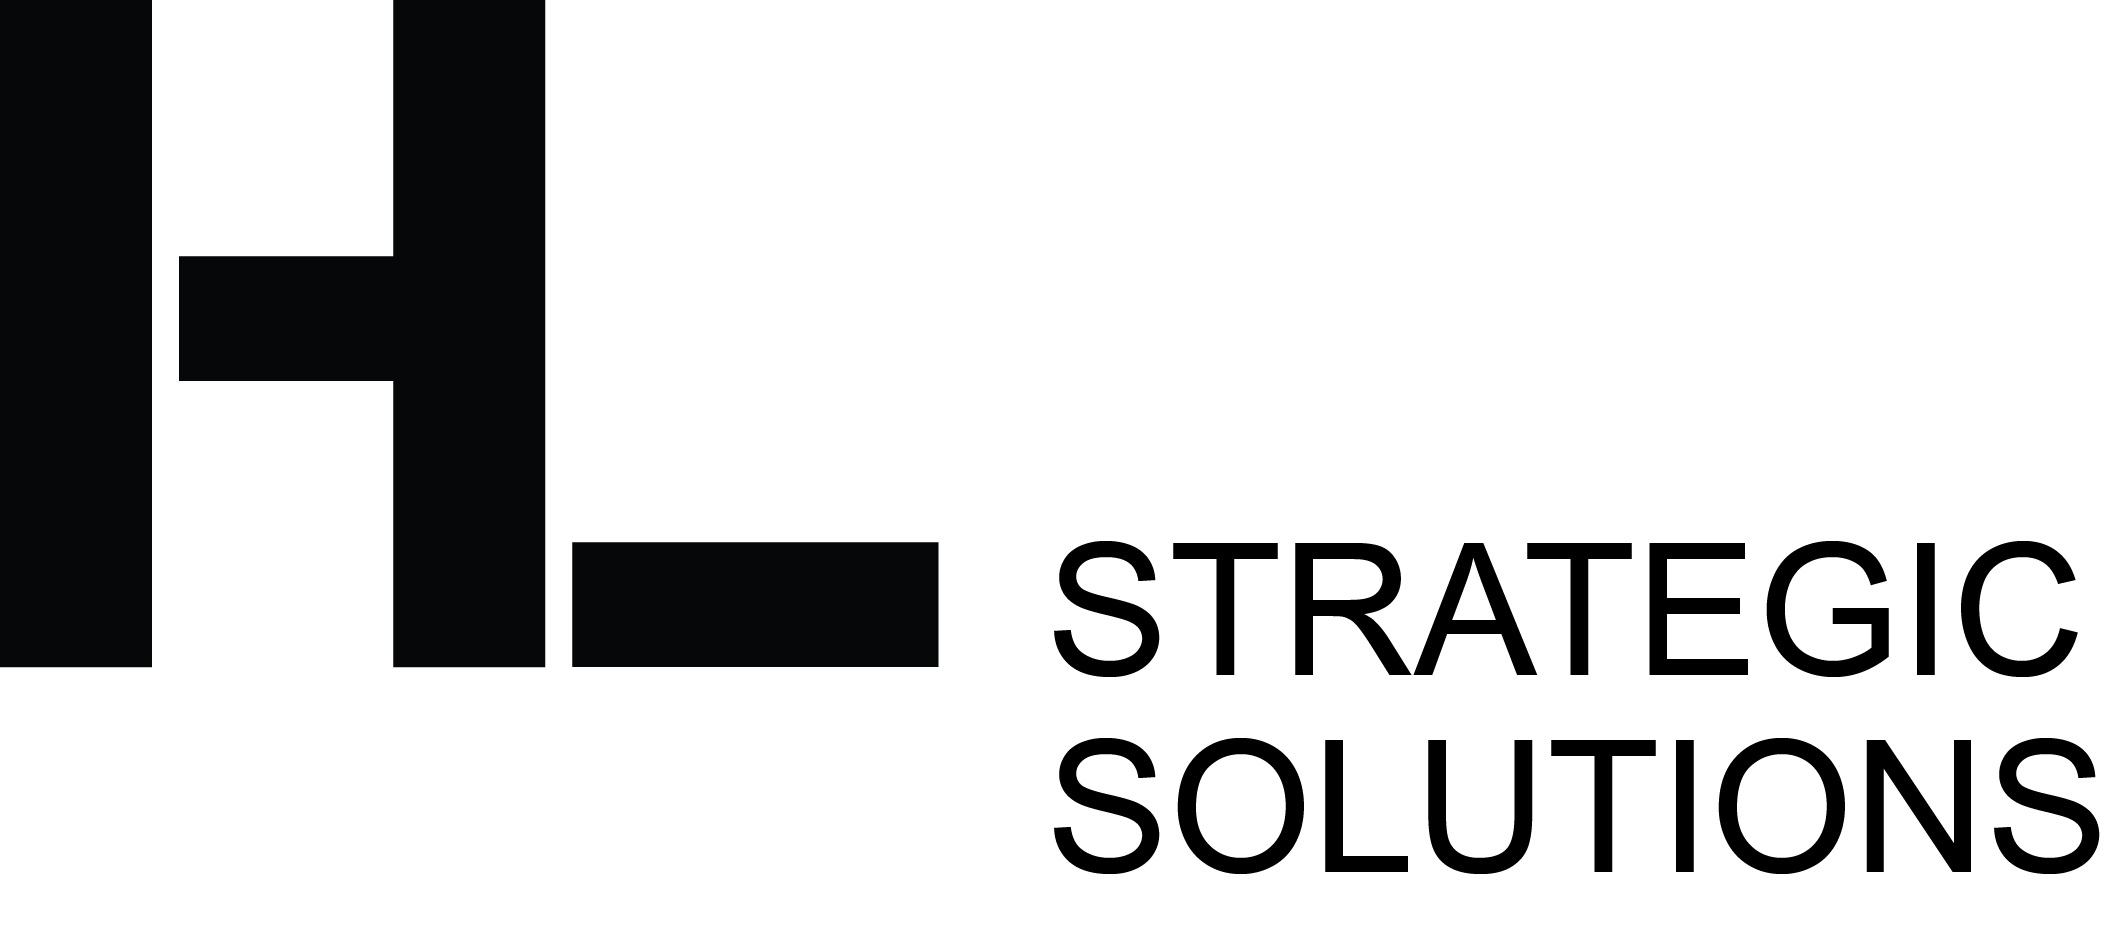 HL+Logo+Strategic+Solutions.jpg